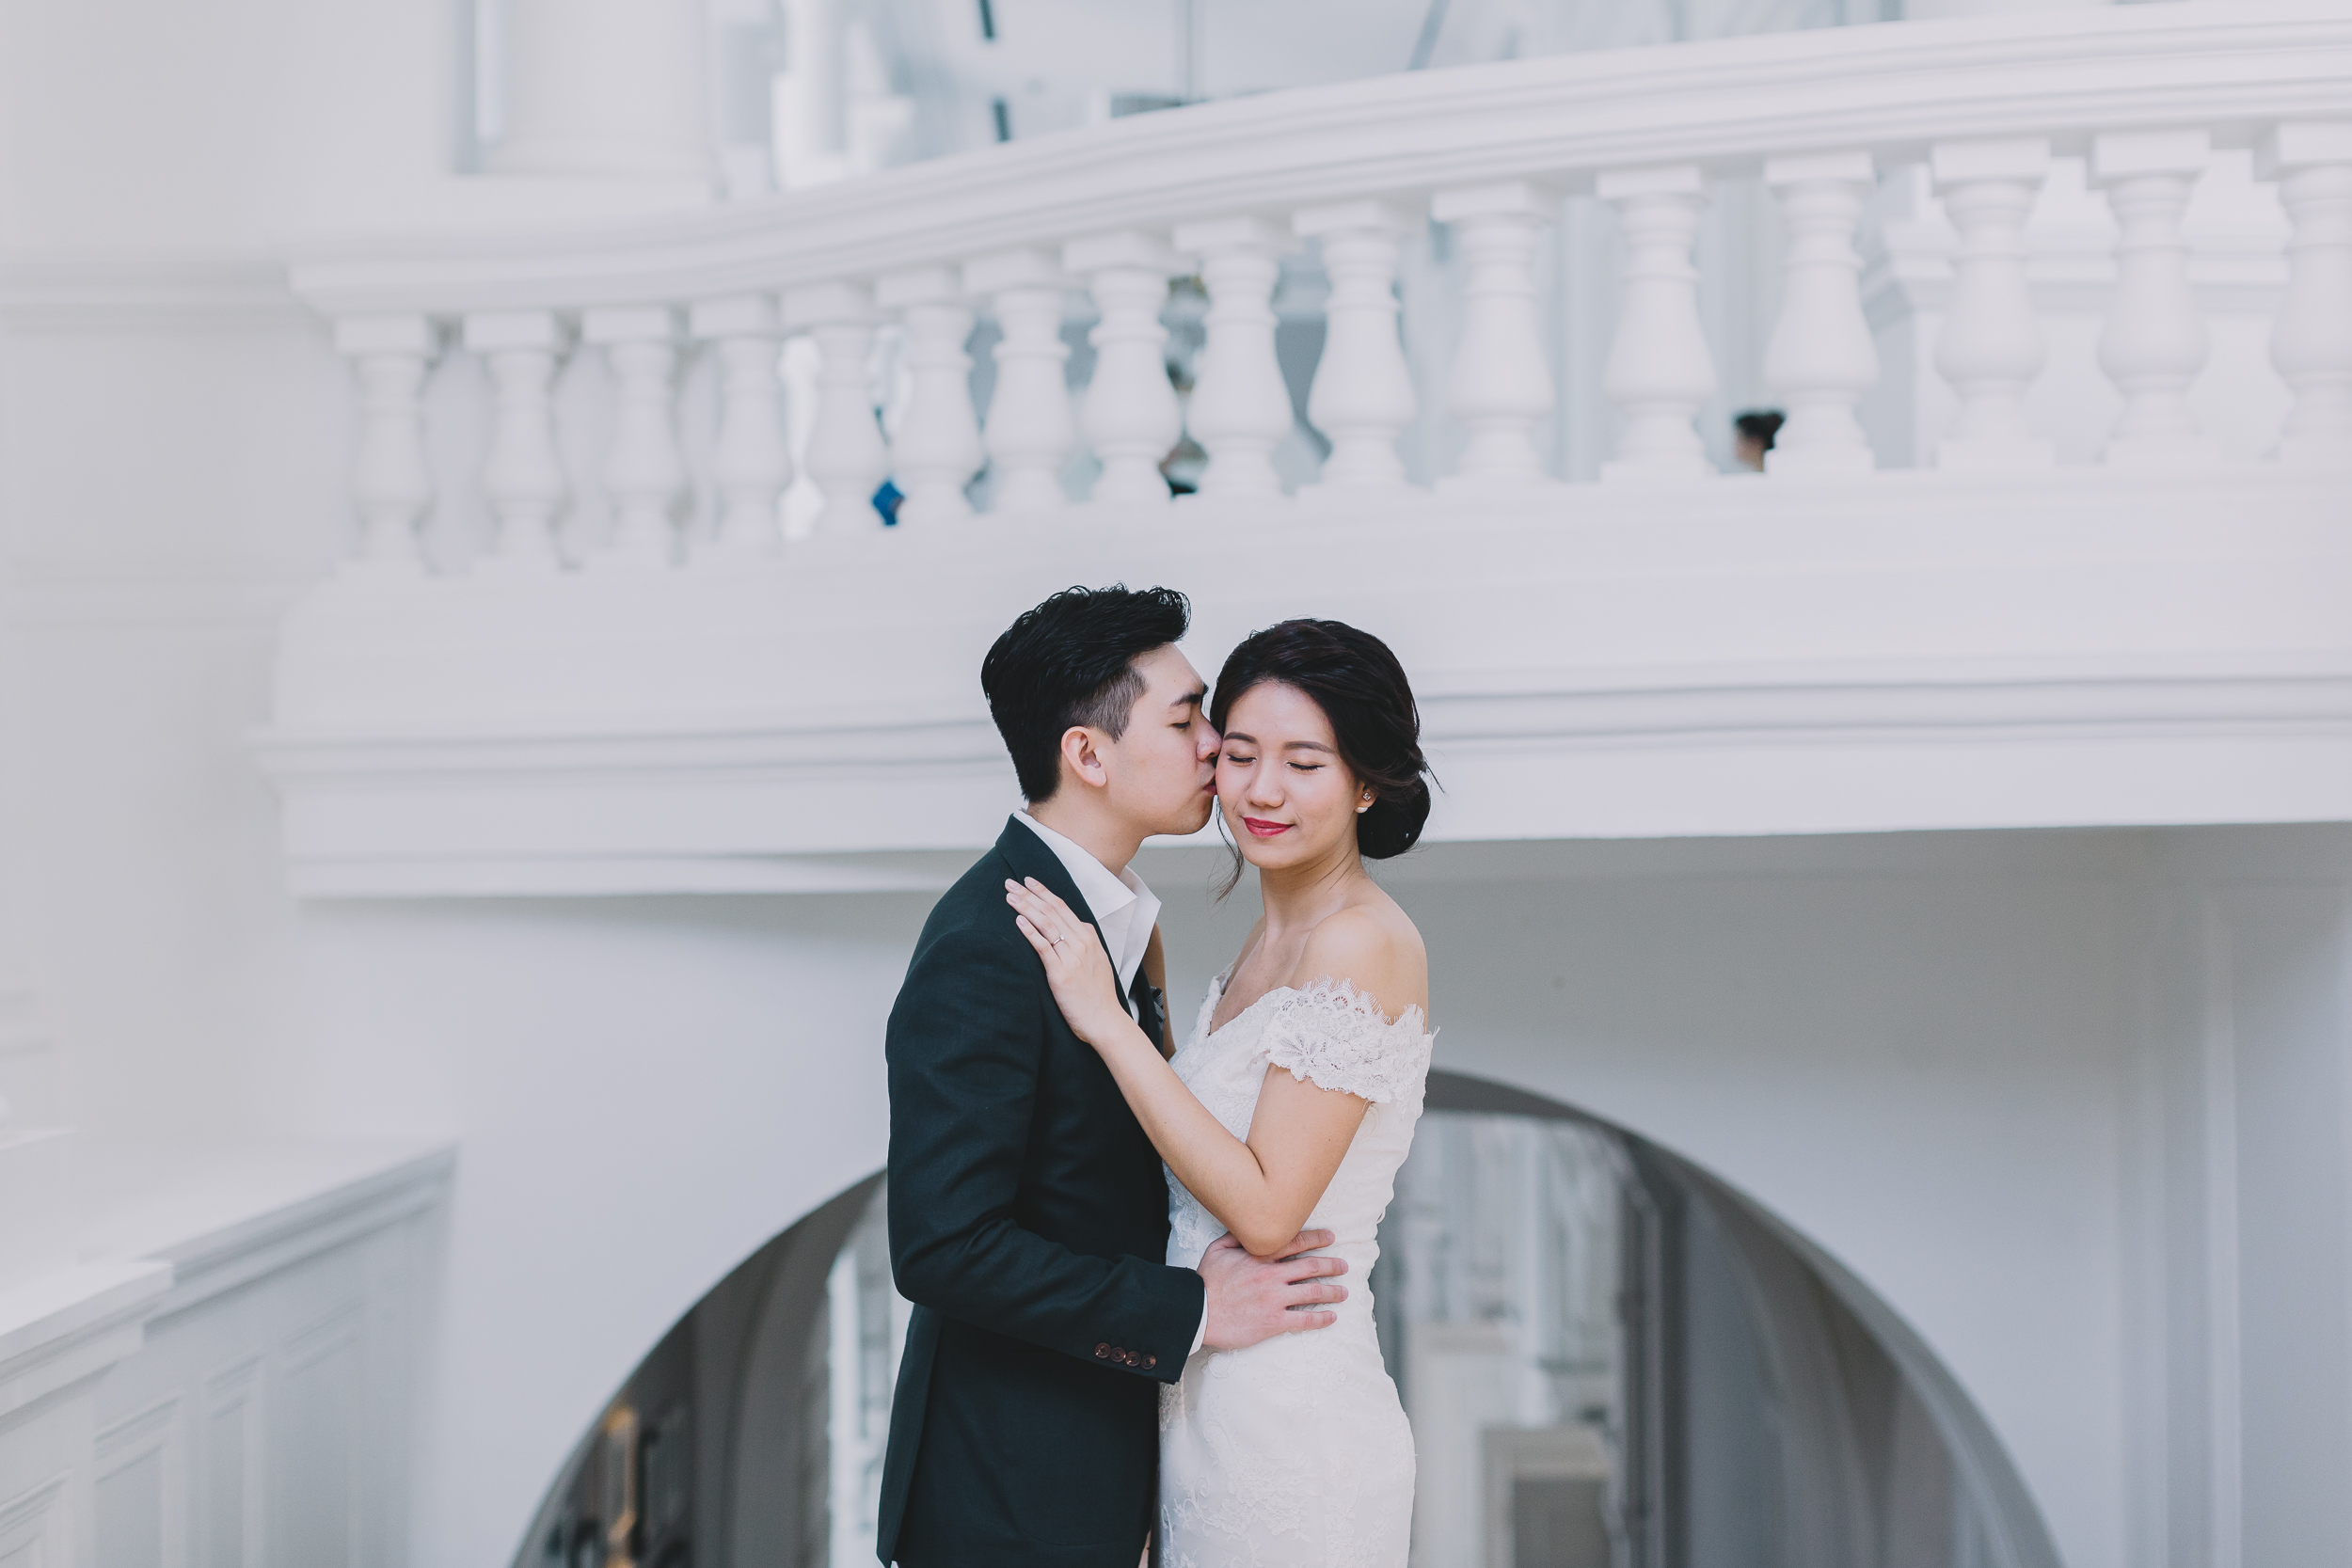 Singapore+Pre+Wedding+Photographer+Jeremiah+Christina-0006.jpg